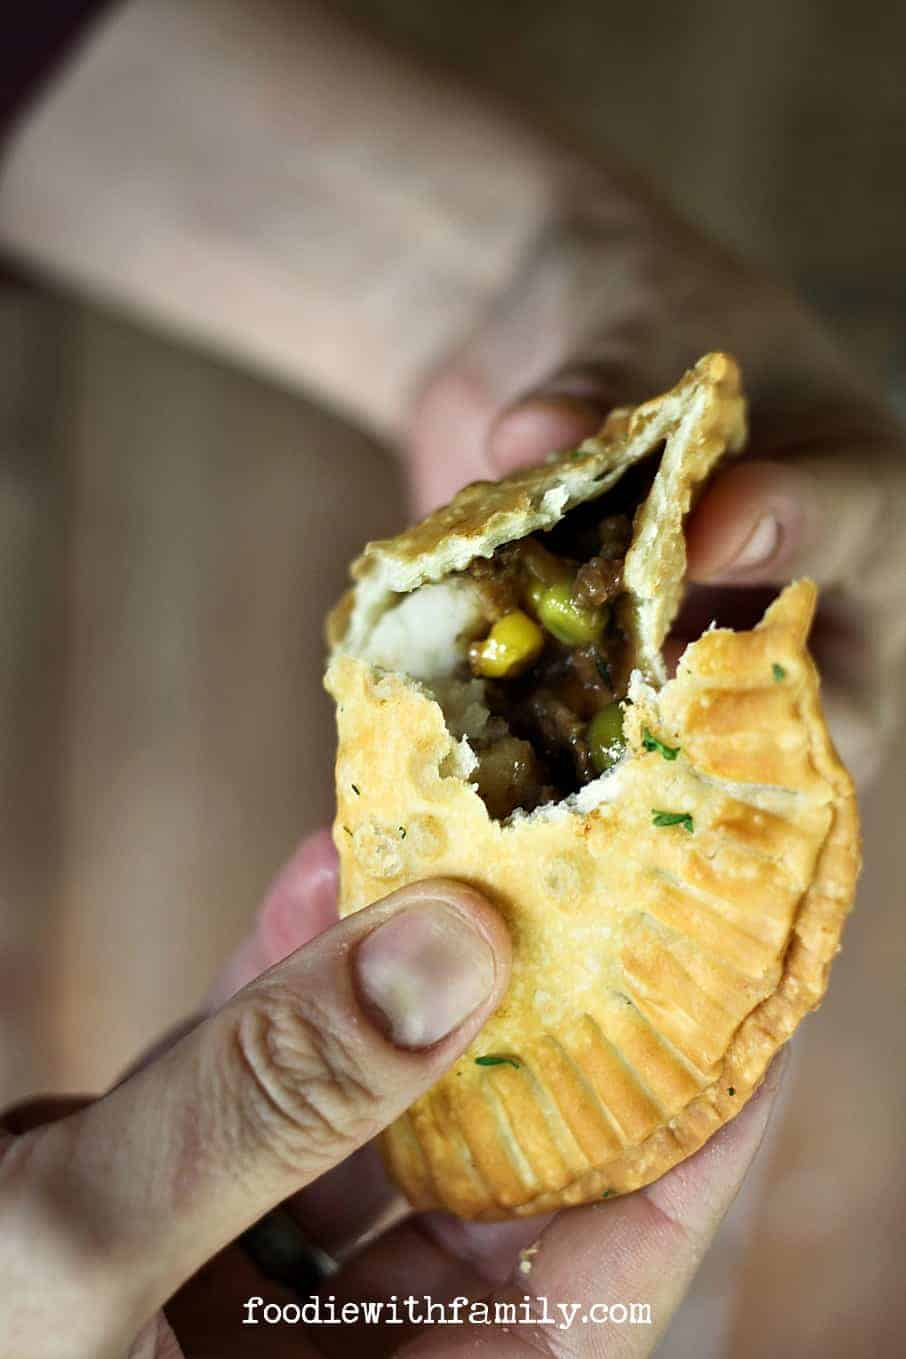 Shepherd's Pie Empanadas {beef, gravy, corn, peas, and mashed potato stuffed in a flaky, golden brown crust} from foodiewithfamily.com